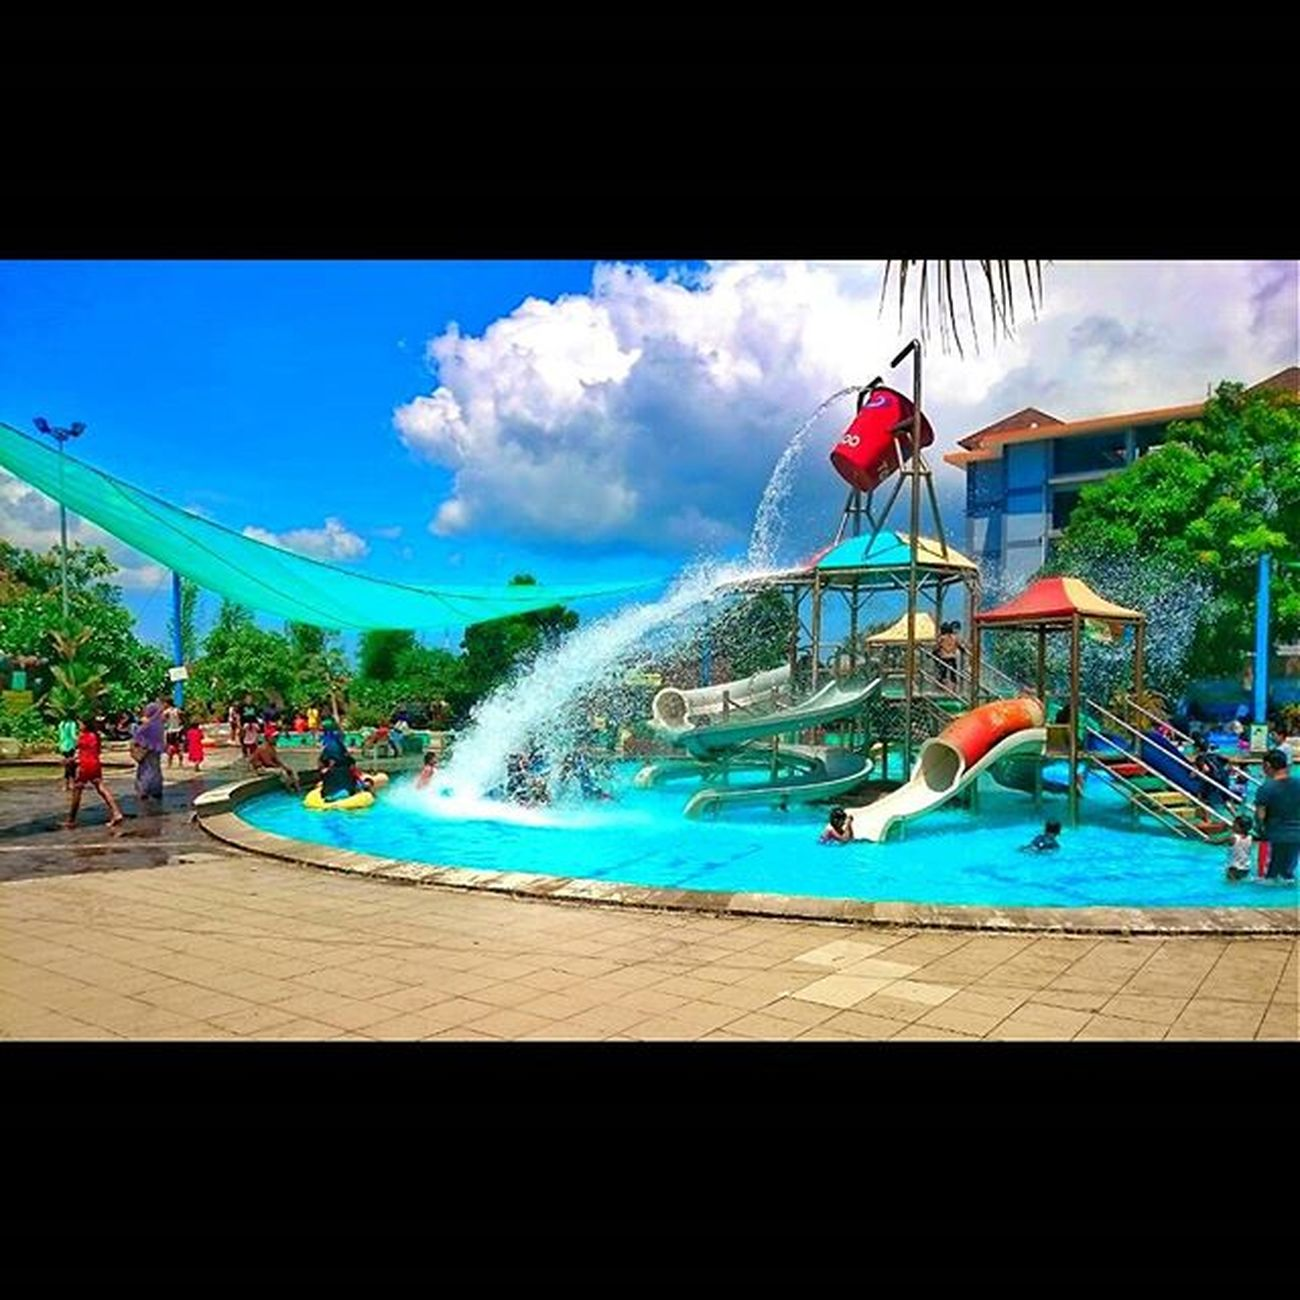 Holiday Holiday Waterpark Xperiamobile Xperiaz2photographi Xperiamoments Sonyxperia